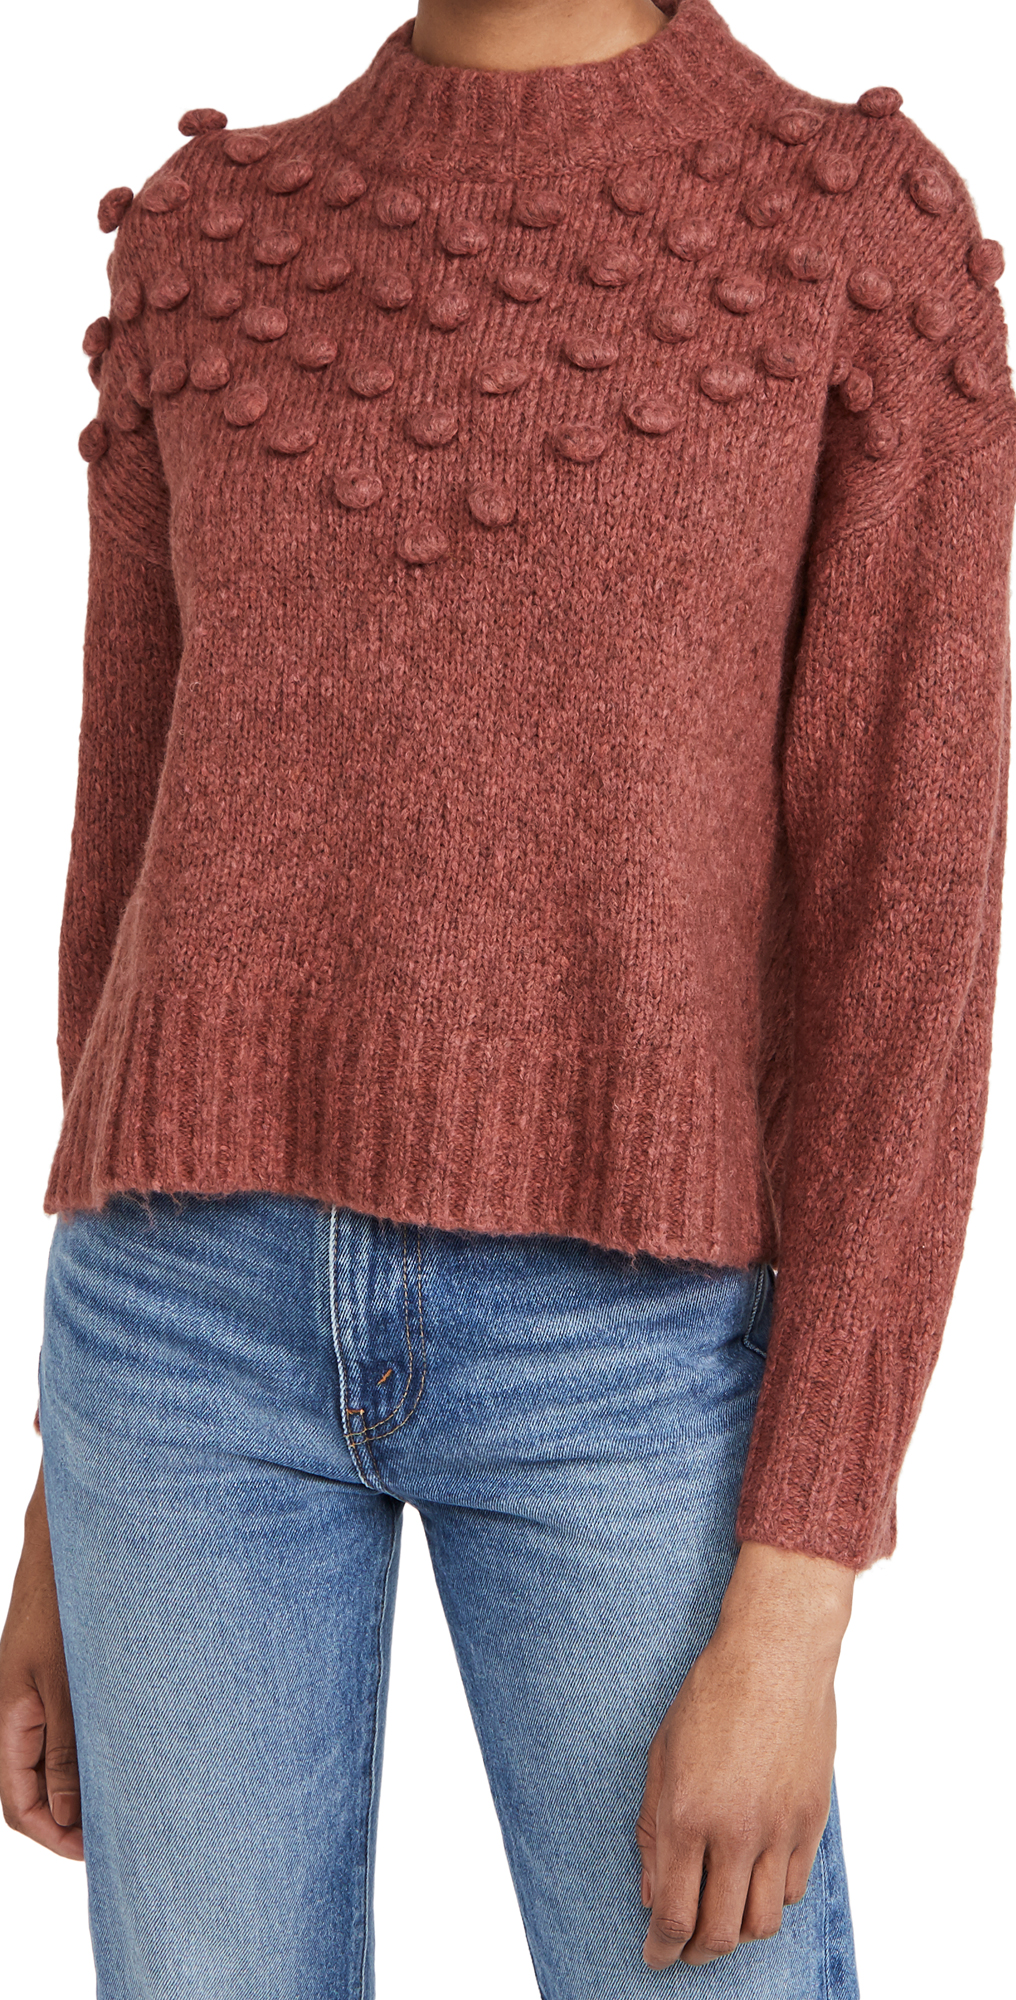 Madewell Bobble Chestnuts Roasting Crew Sweater